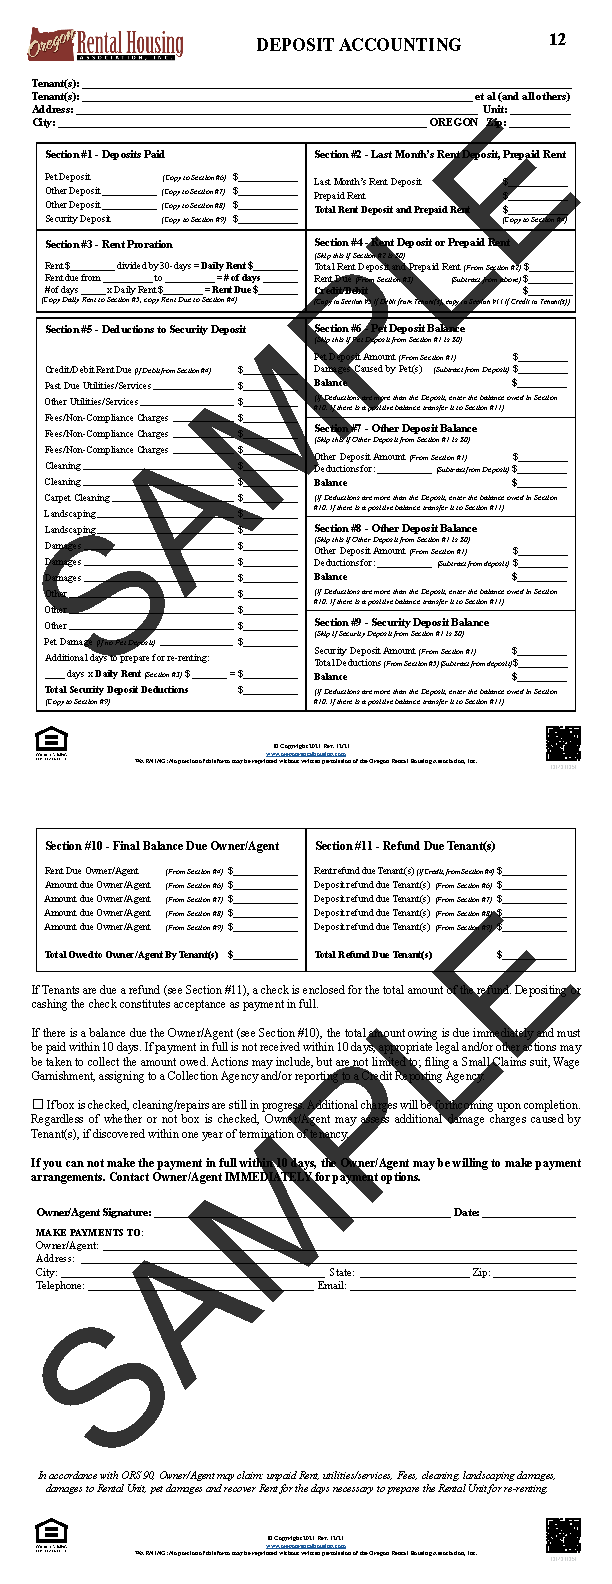 Oregon Rental Housing Association  Choose Your Form